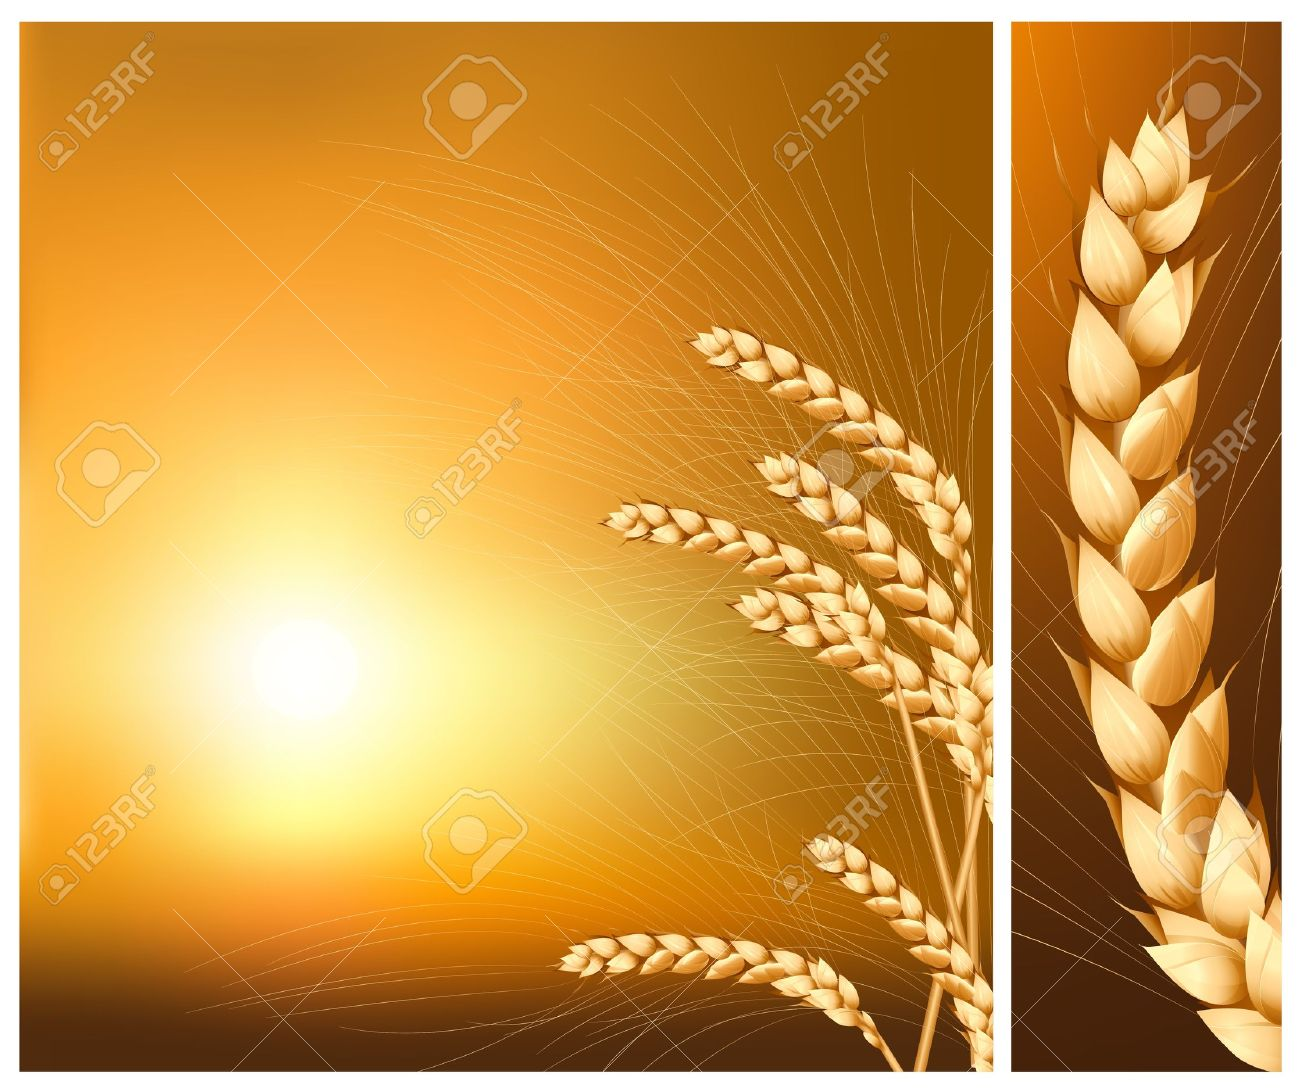 Vector. Ears of wheat on the  rising sun background. Stock Vector - 10053488